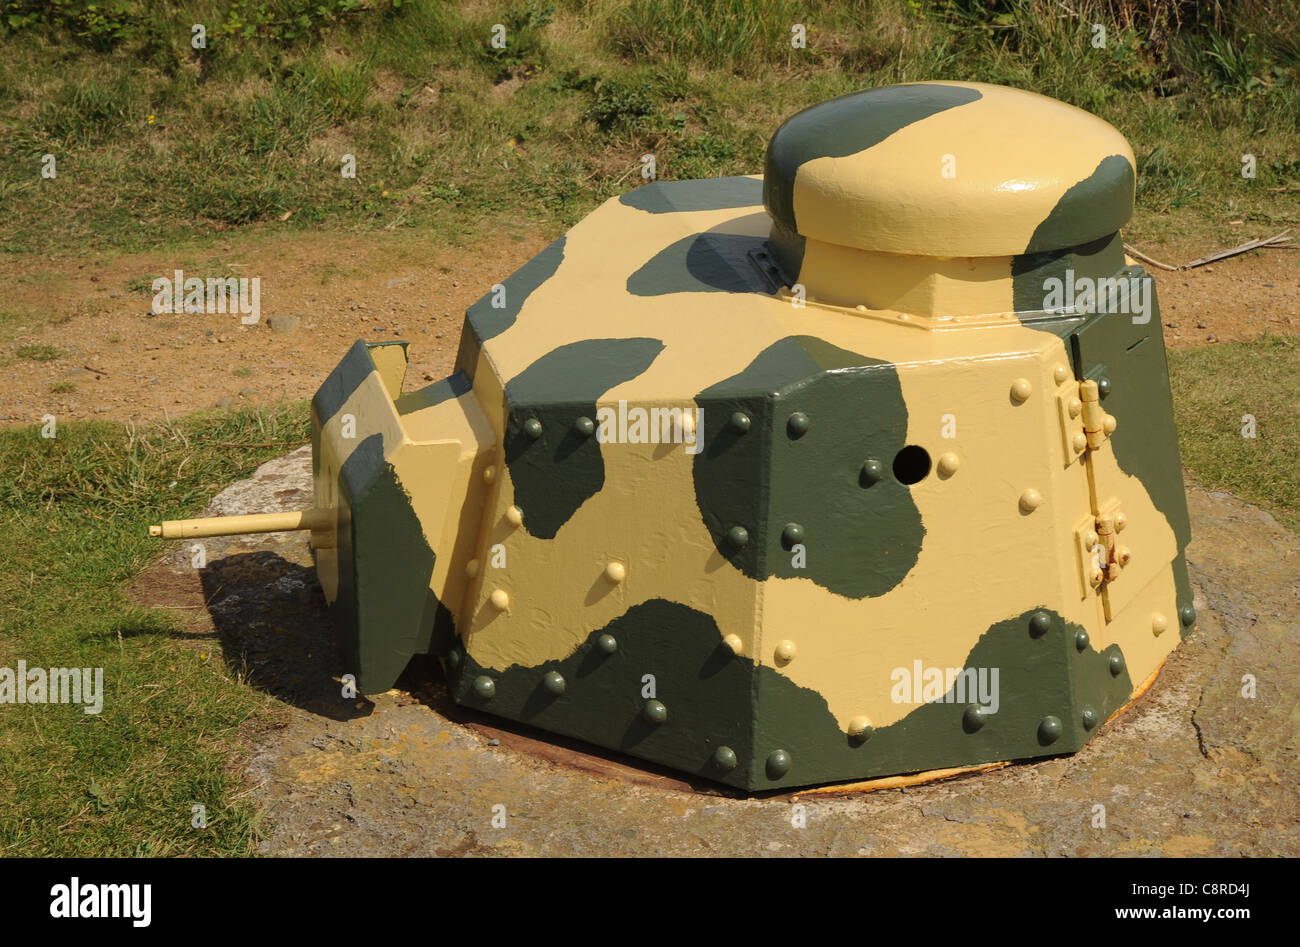 WW11 German used Renault Ft17 turret mounted in a Tobruk bunker at the restored Batterie Dollmann, Guernsey. - Stock Image